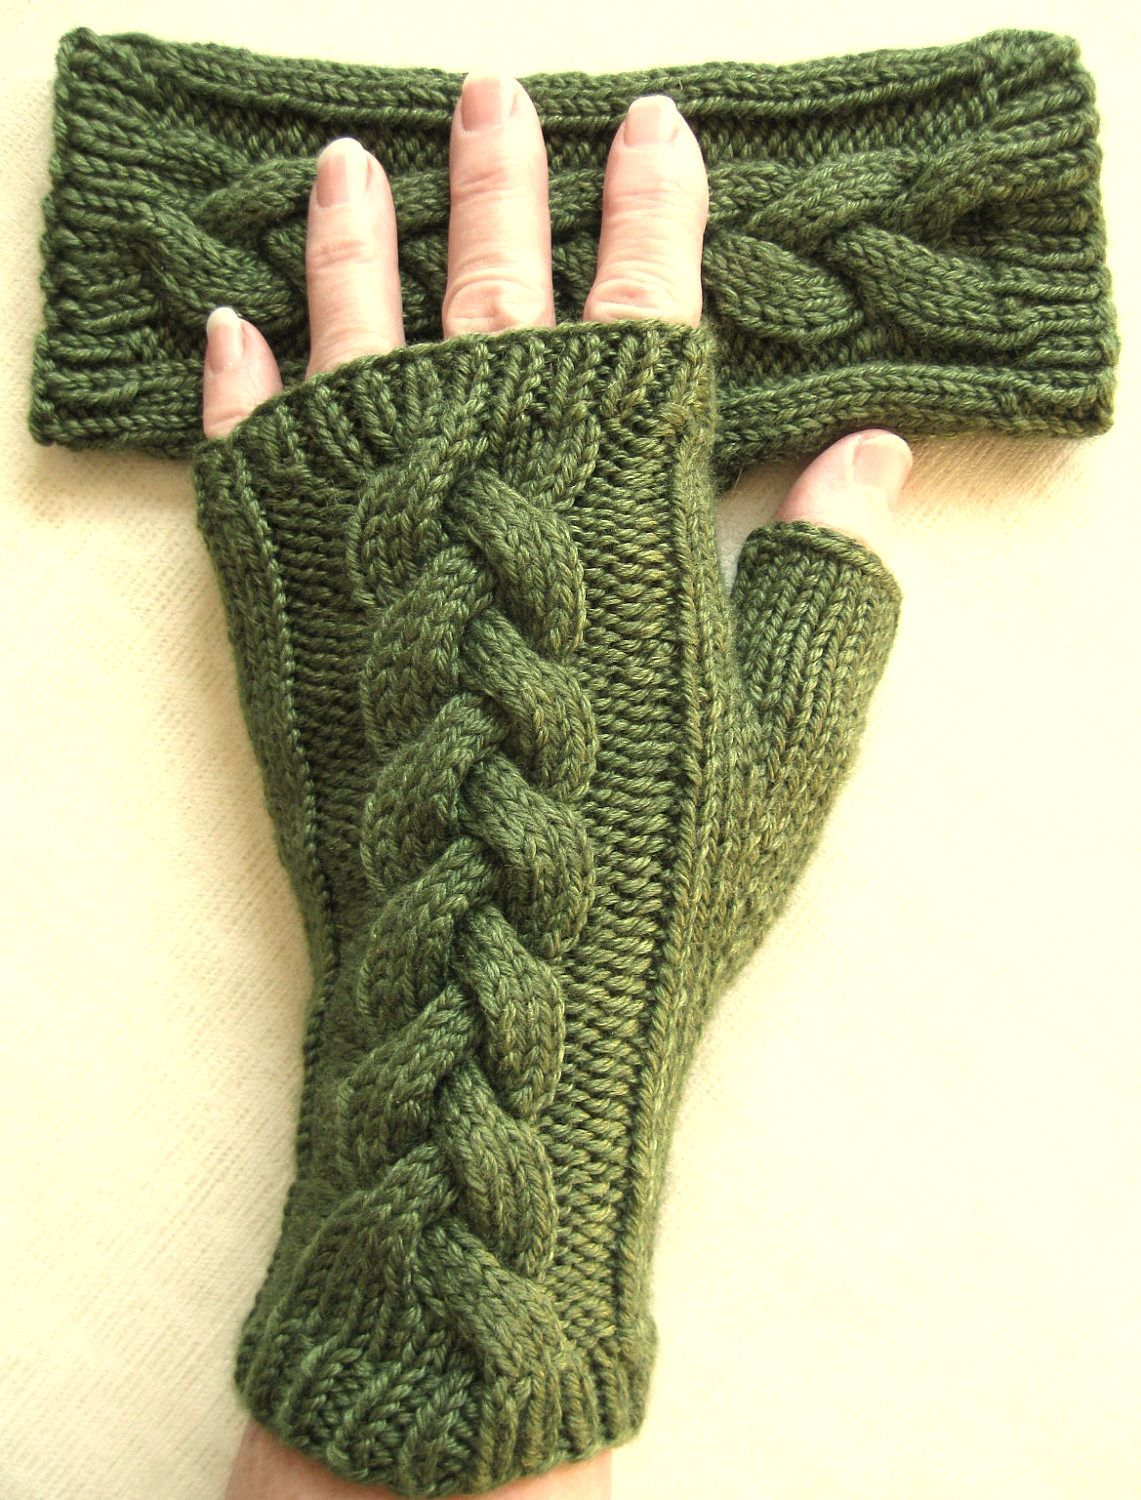 Fingerless gloves eso - 1000 Images About Para Carly On Pinterest How To Make Tutu Ganchillo And Crochet